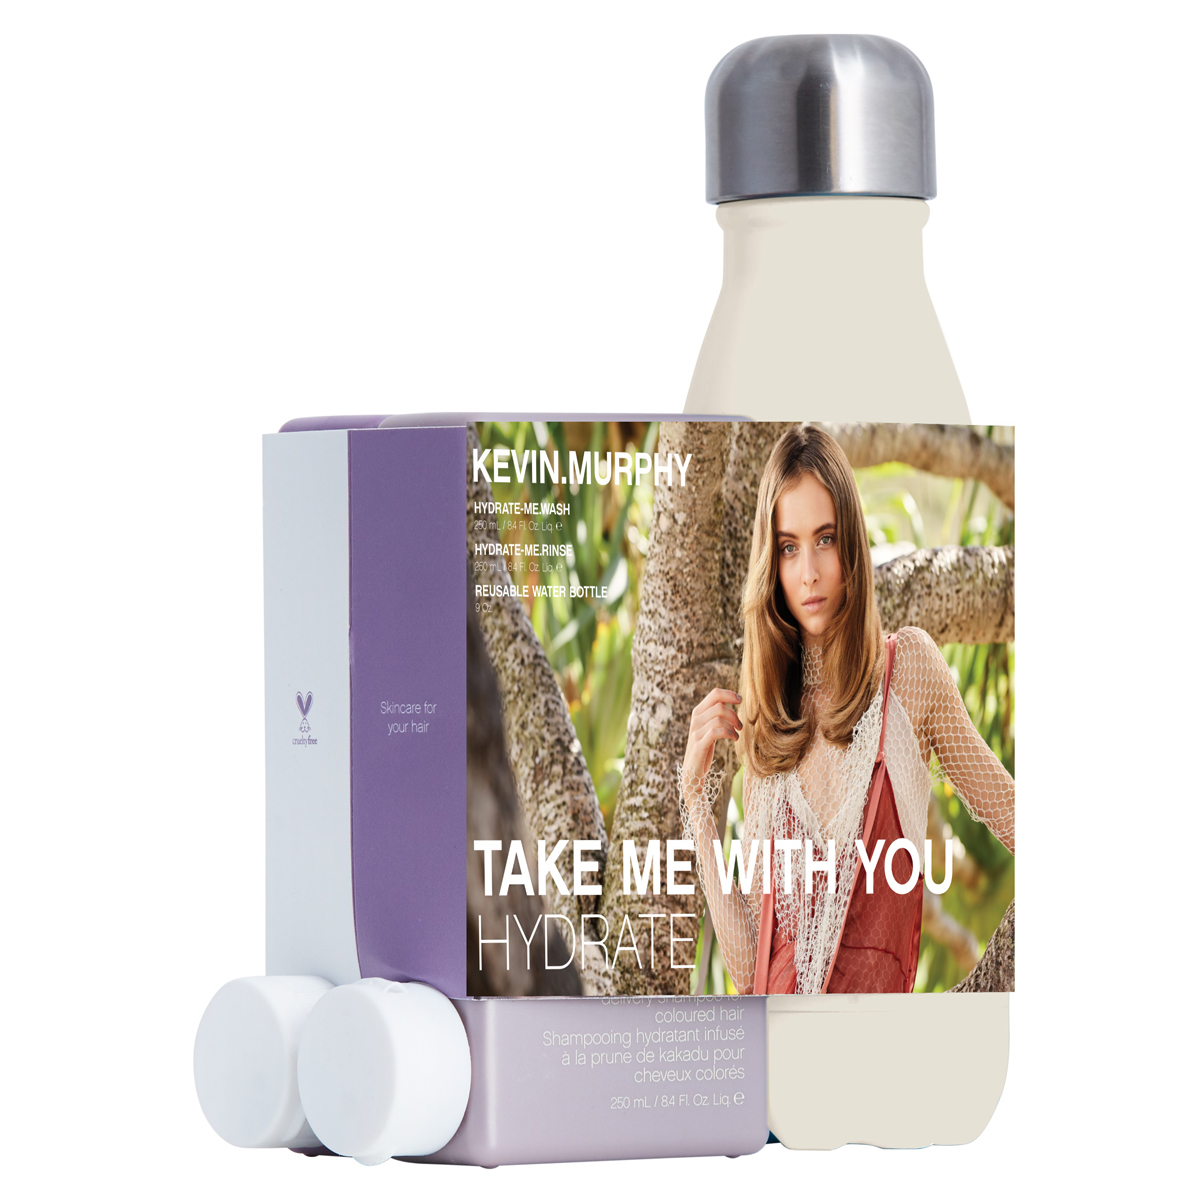 Kevin Murphy Hydrate Me - Take me with you - Hydrate DUO - Hairsale.se